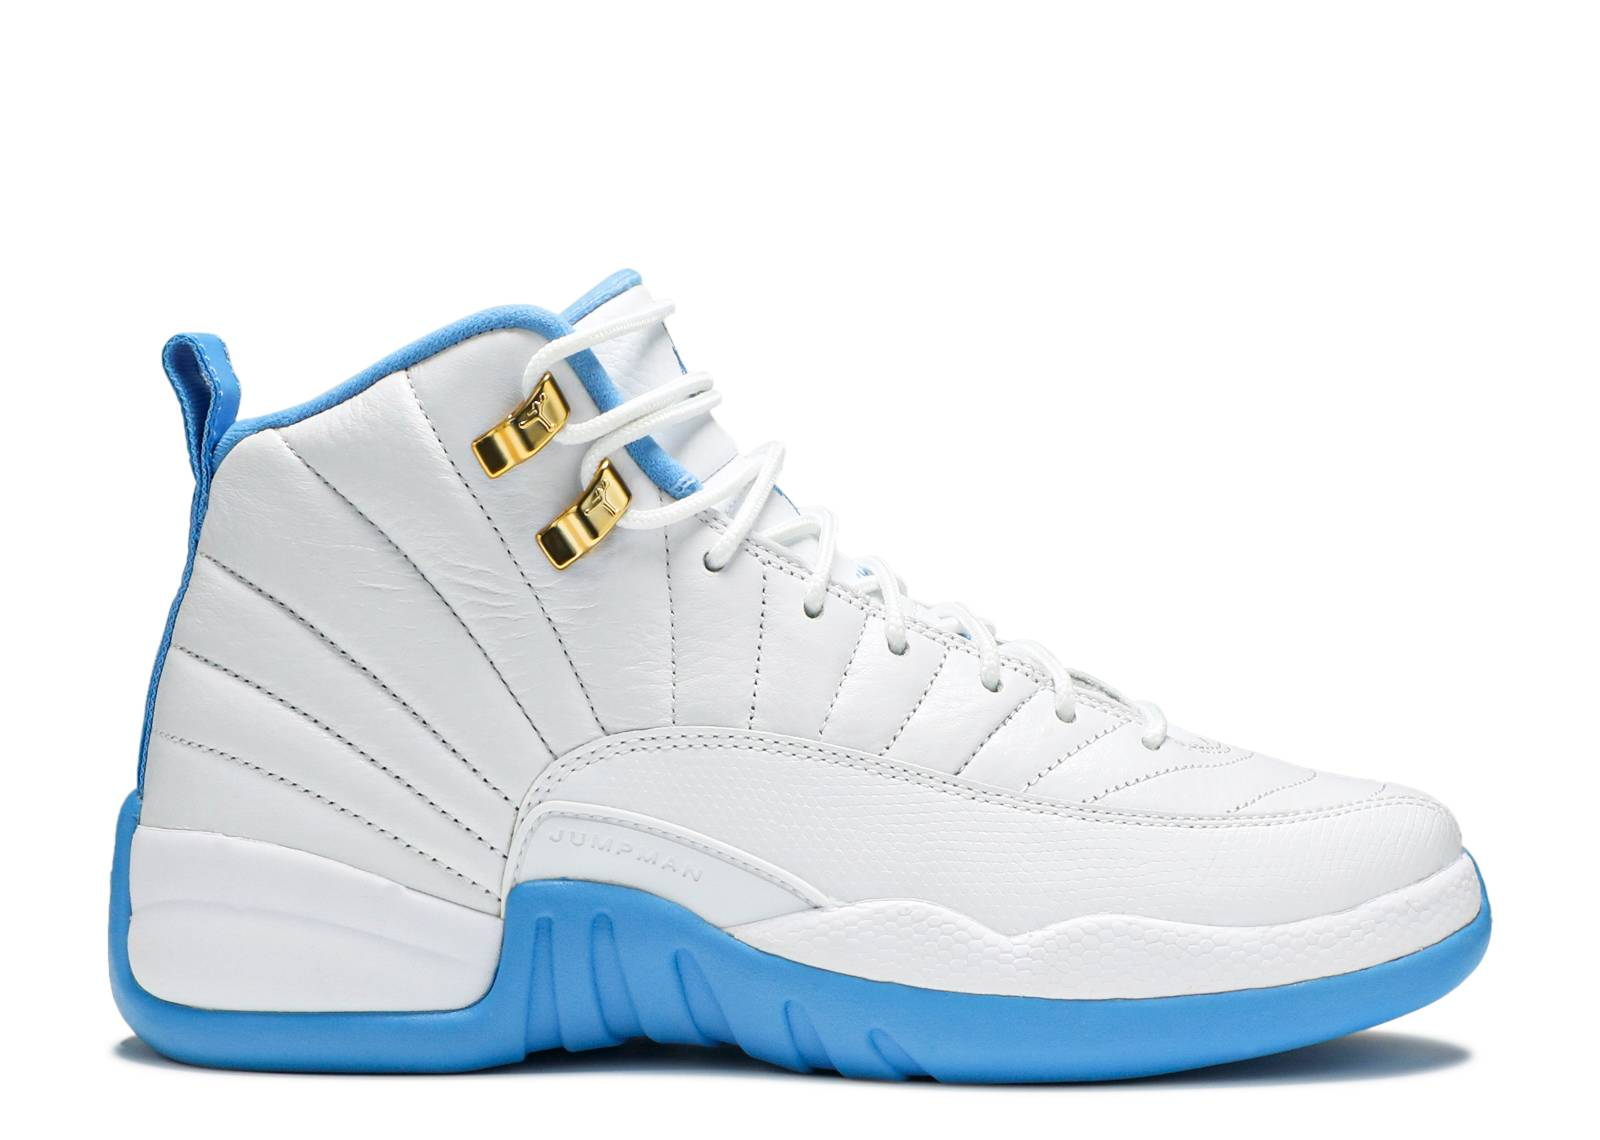 the best attitude 8c7d1 14dbf Air Jordan 12 Retro GG 'University Blue'